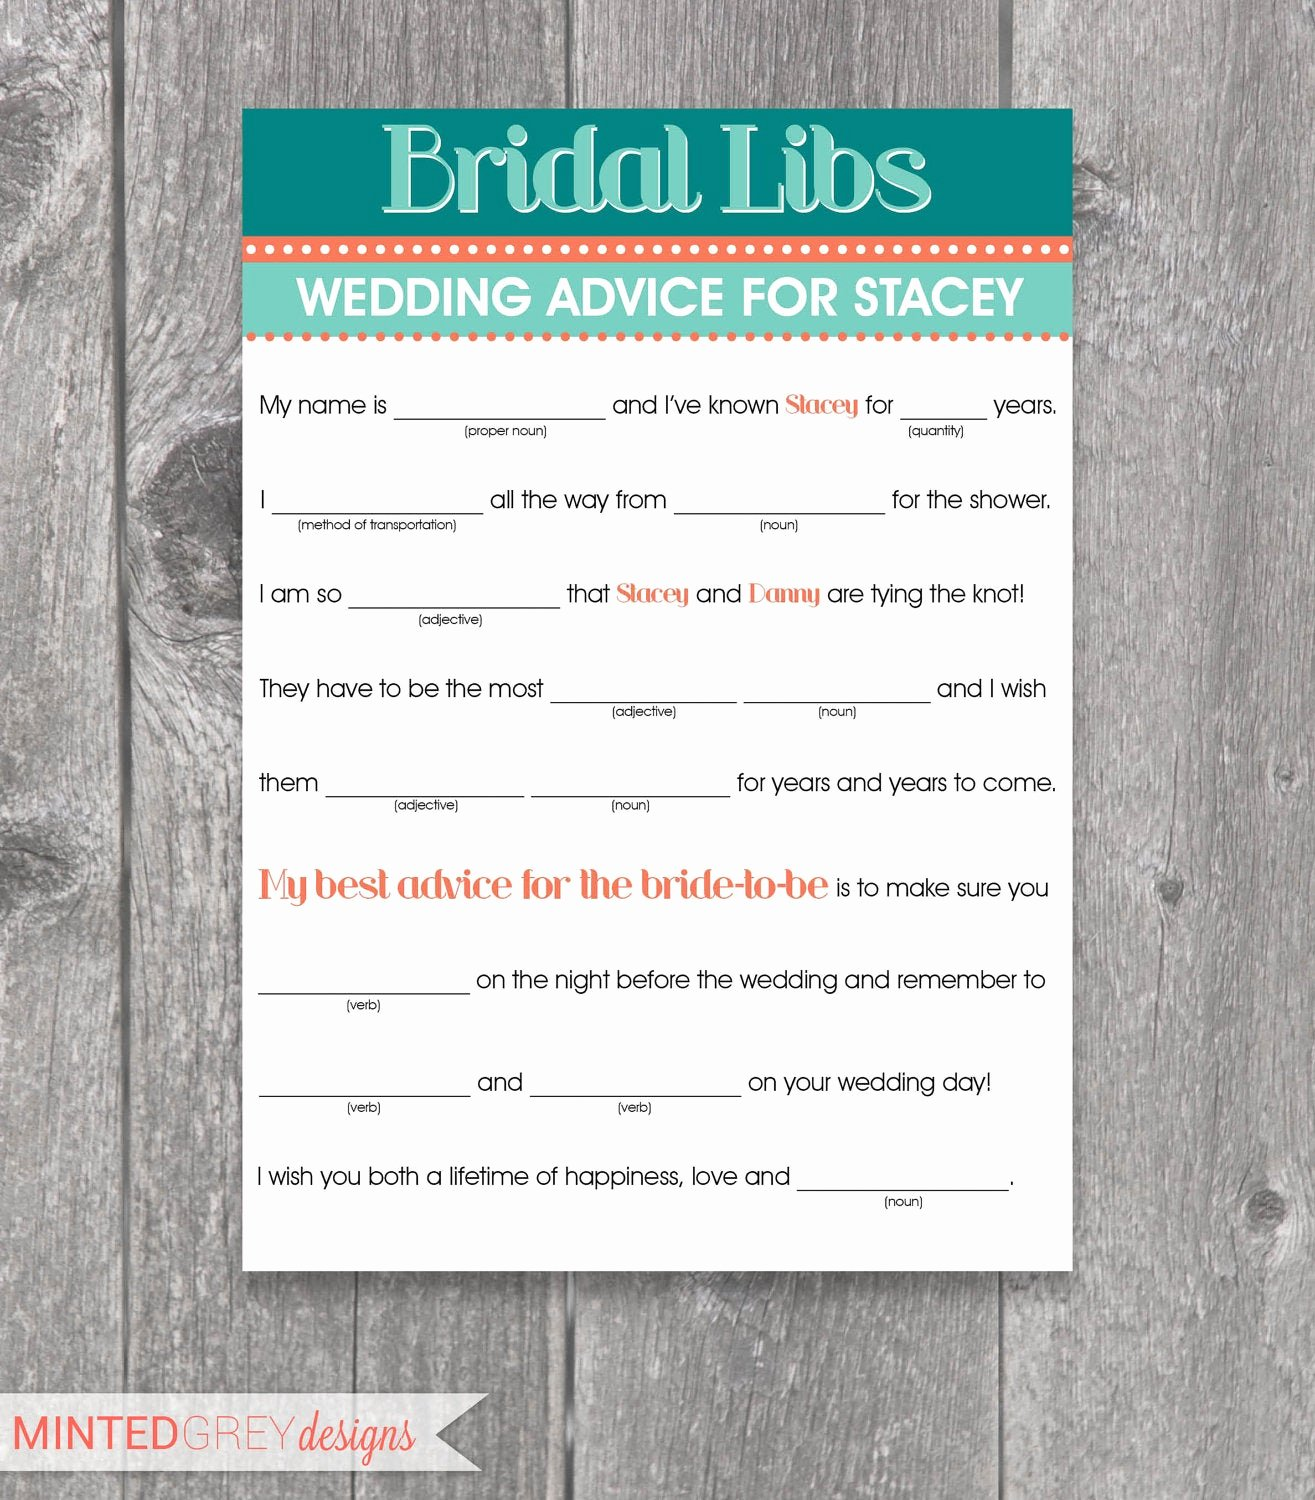 Wedding Shower Mad Lib Template Inspirational Printable Bridal Libs Mad Libs Bridal Shower Game